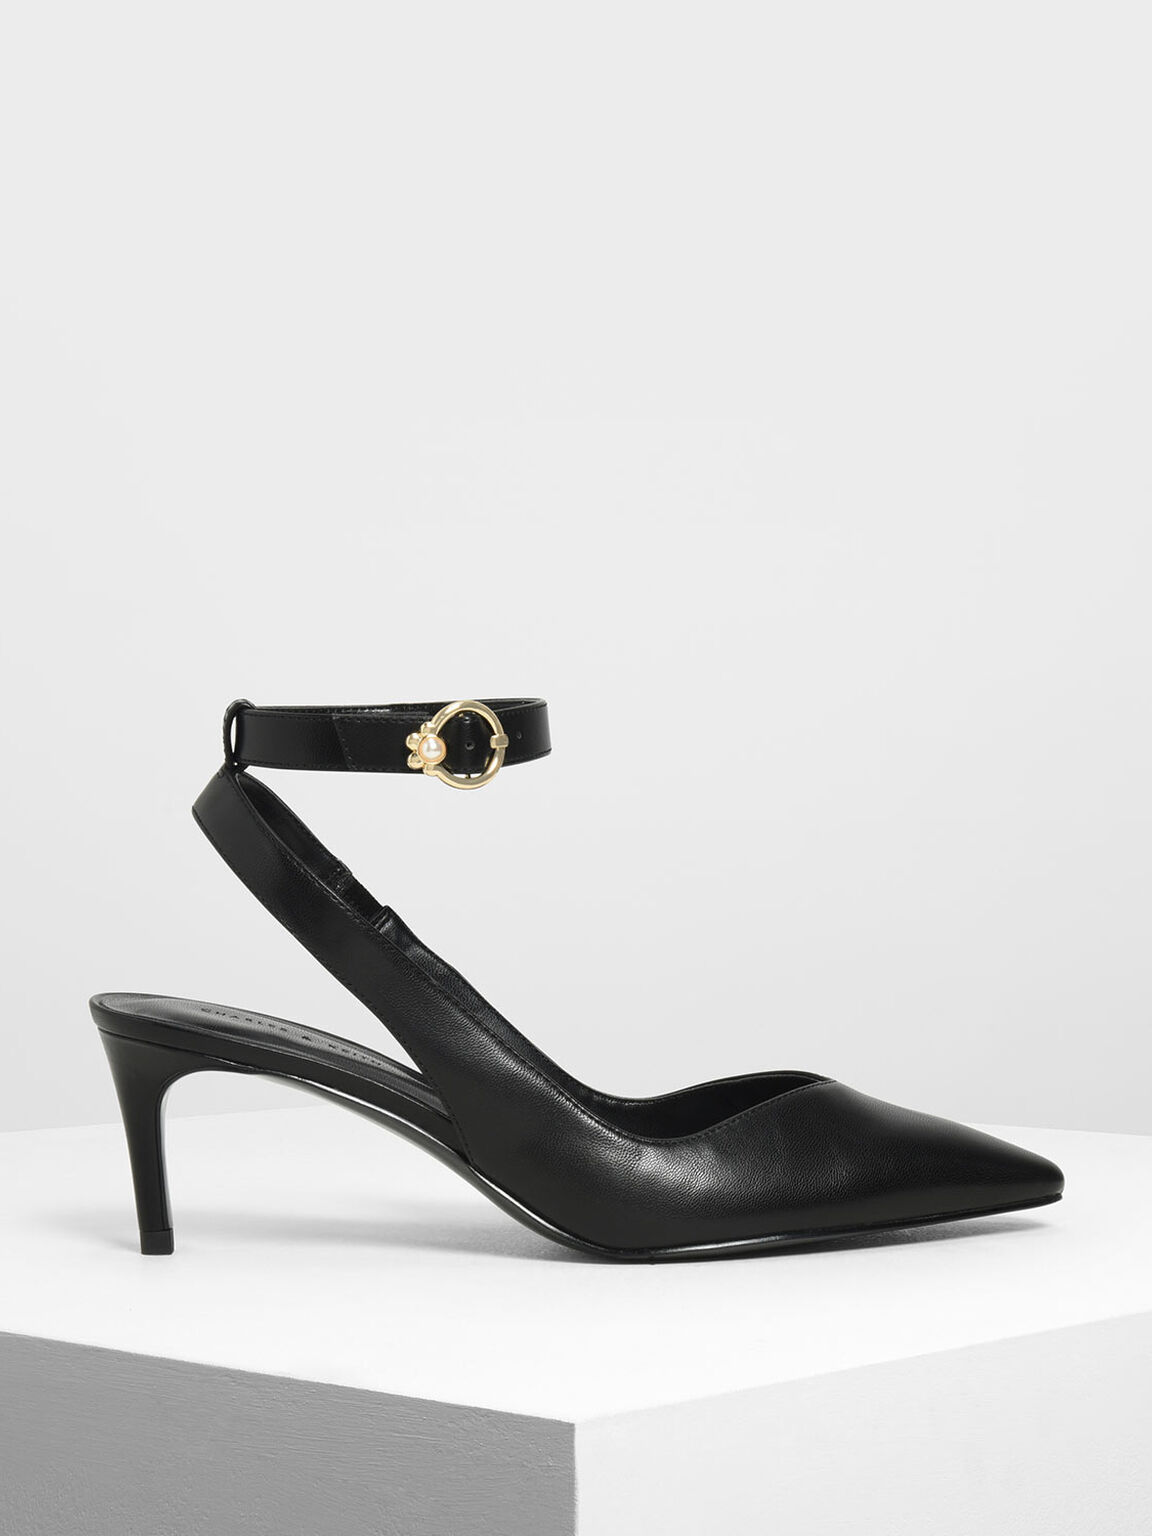 Embellished Ankle Strap Pumps, Black, hi-res